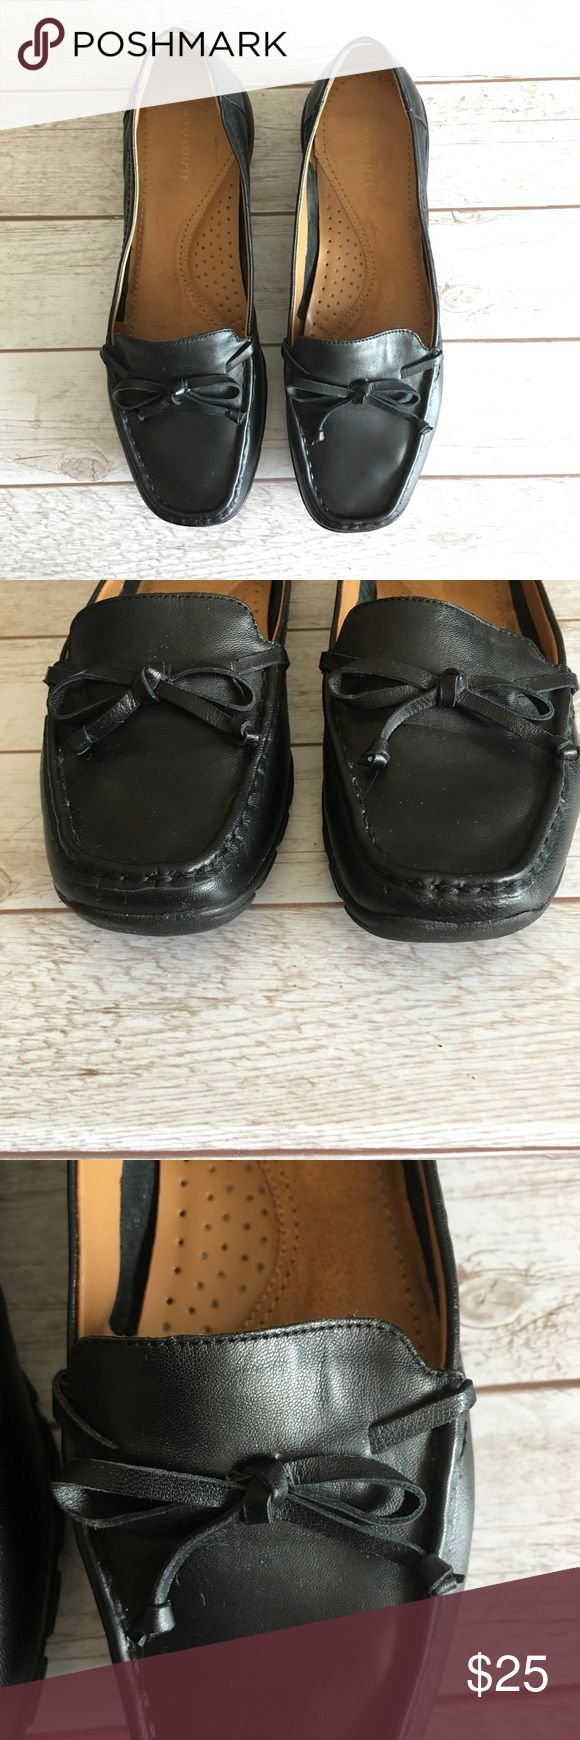 EASY SPIRIT Black Leather Loafers This pair is on excellent condition. Very soft and comfortable. Sz 7.5. #easyspirit #easyspiritshoes #easyspiritloafers #leatherloafers #blackleatherloafers Easy Spirit Shoes Flats & Loafers